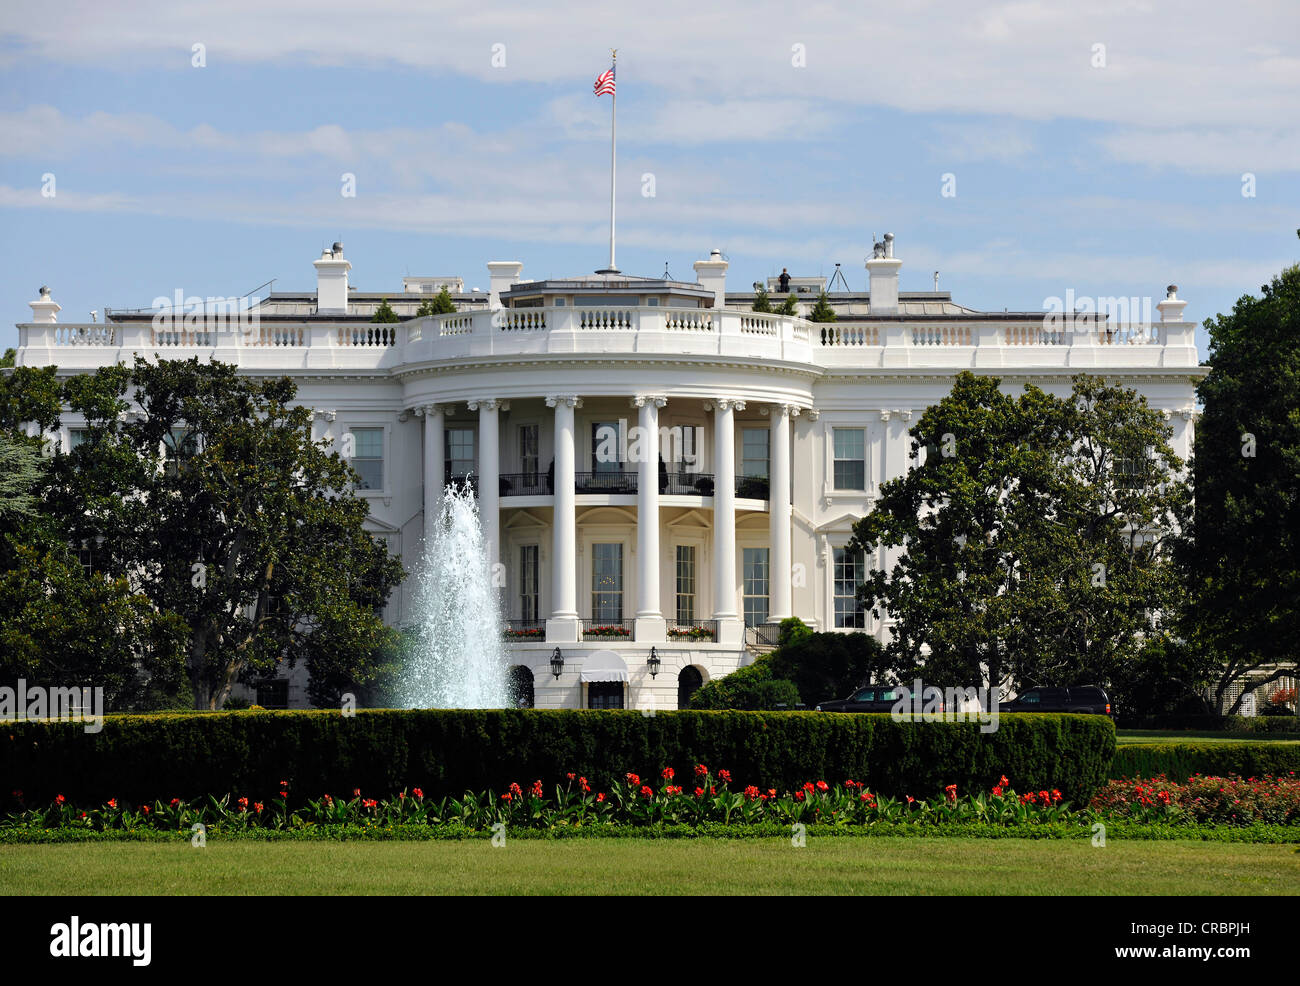 View of the South Portico with the Blue Room, The White House, Washington DC, District of Columbia, United States - Stock Image